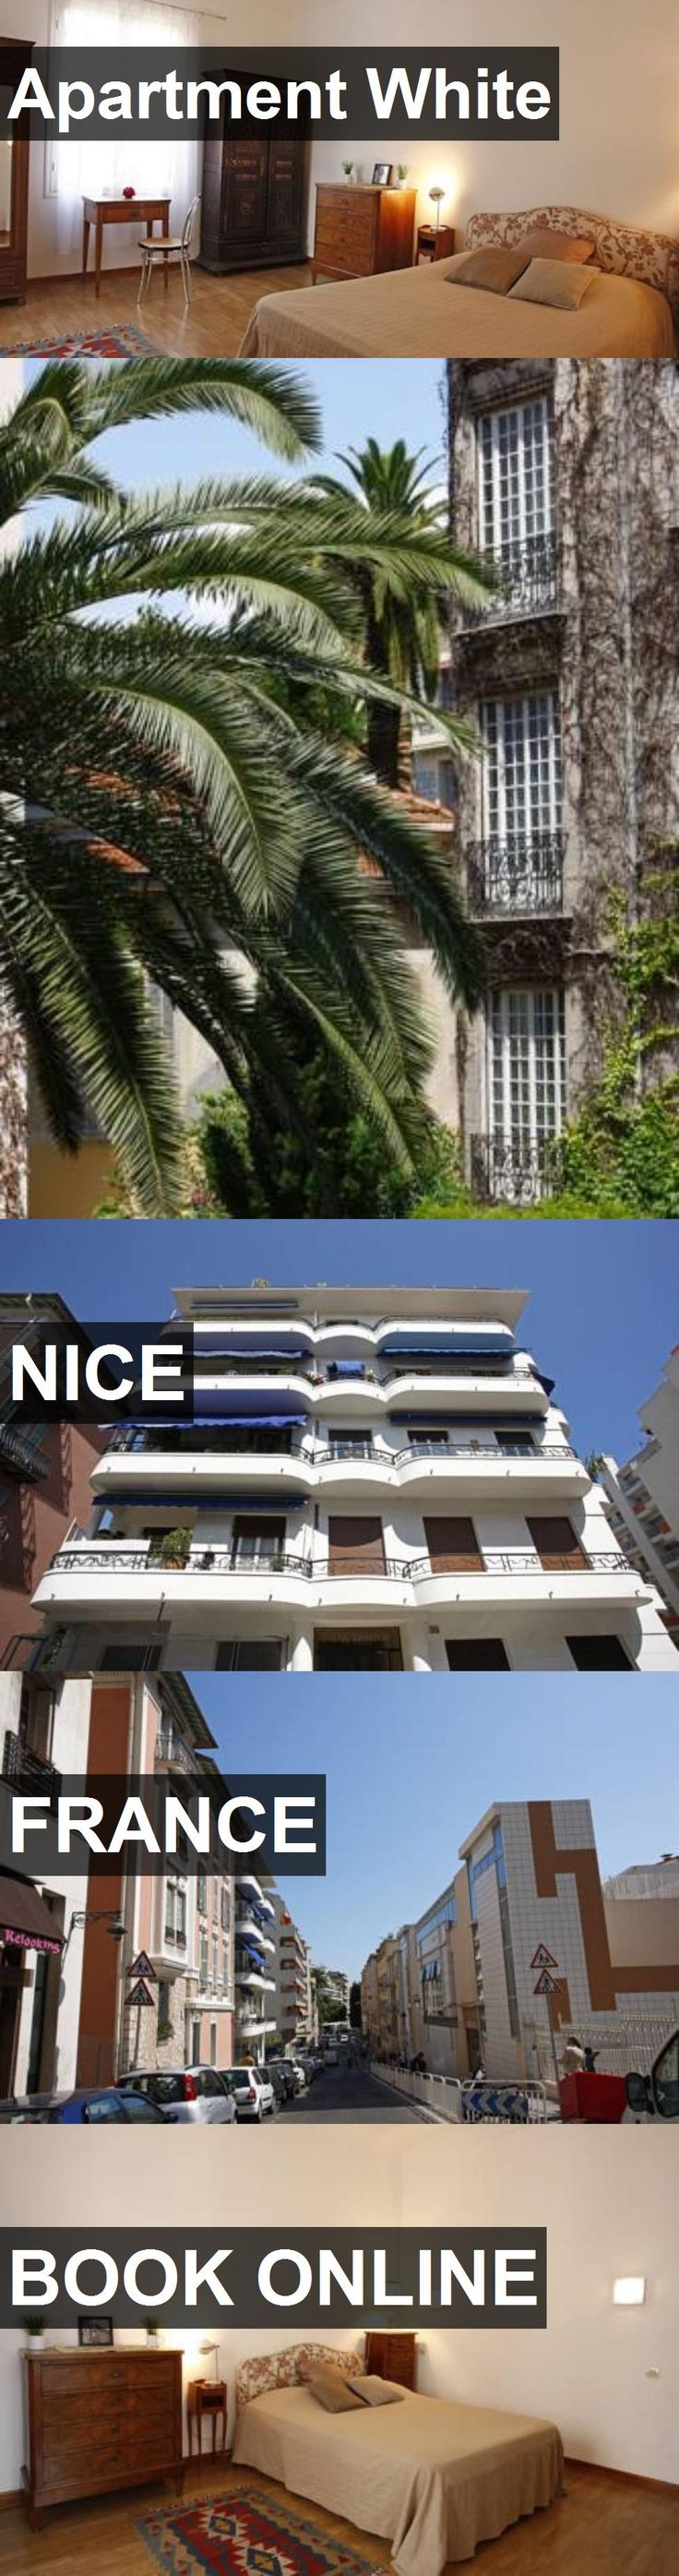 Hotel Apartment White in Nice, France. For more information, photos, reviews and best prices please follow the link. #France #Nice #ApartmentWhite #hotel #travel #vacation